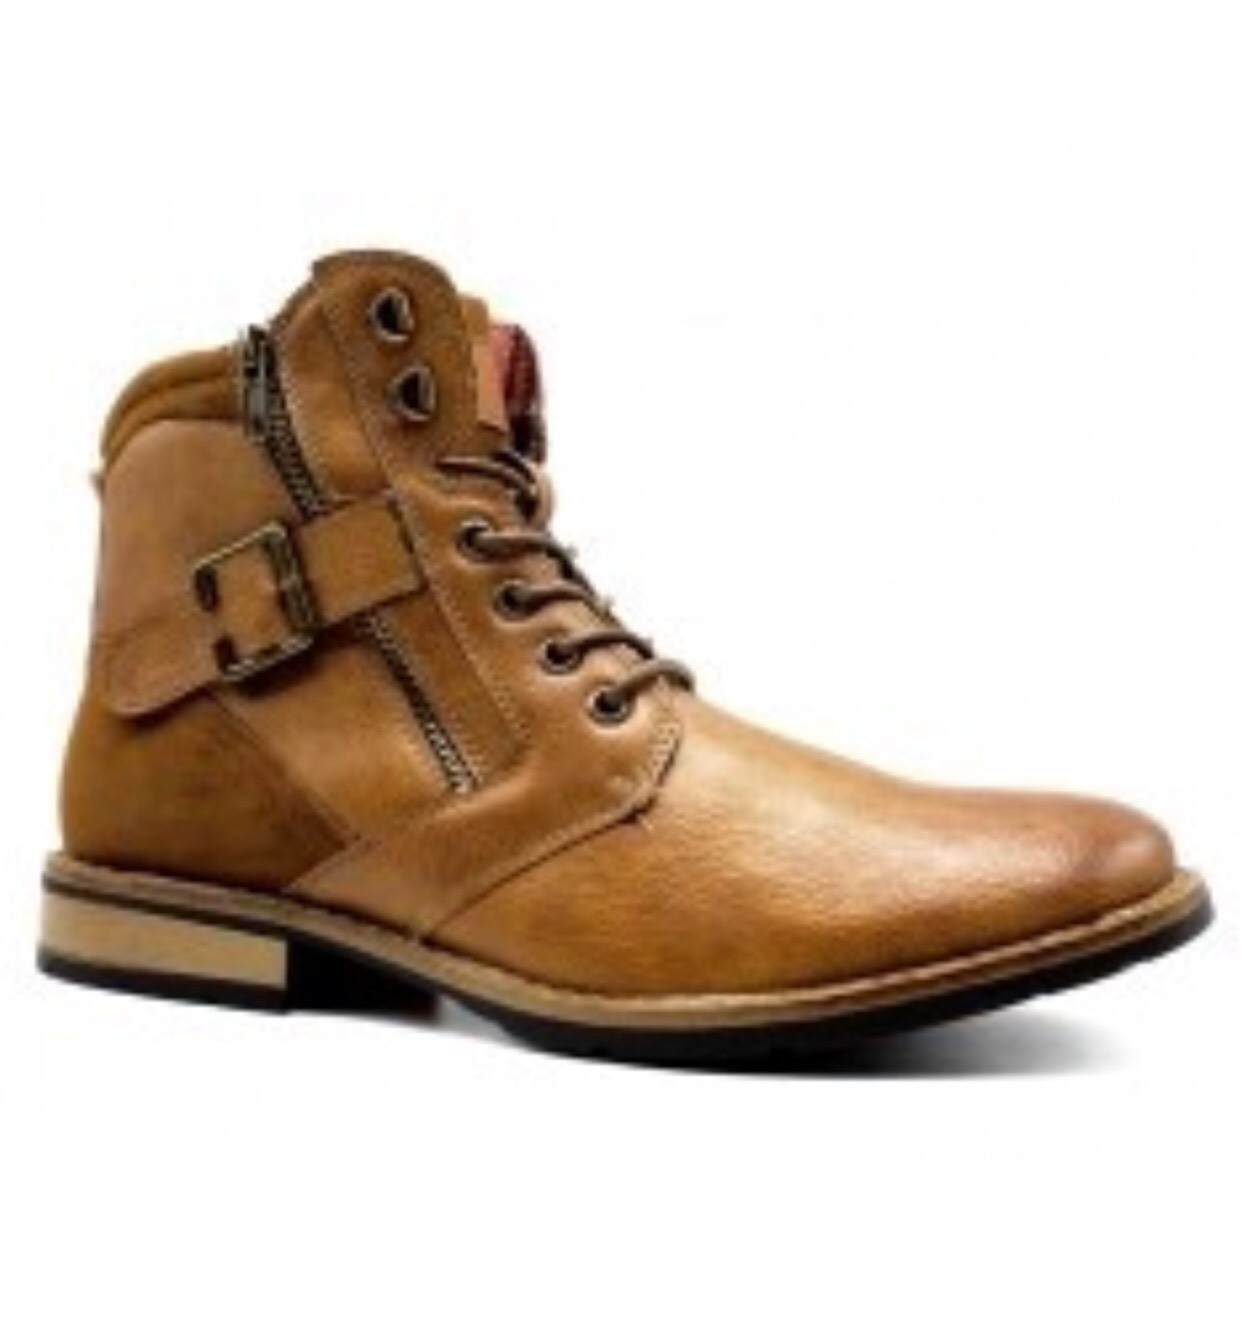 07b096ca3fe1 Menswear Men s Shoes - Camel Ankle Boots Zipped on Both Sides ...